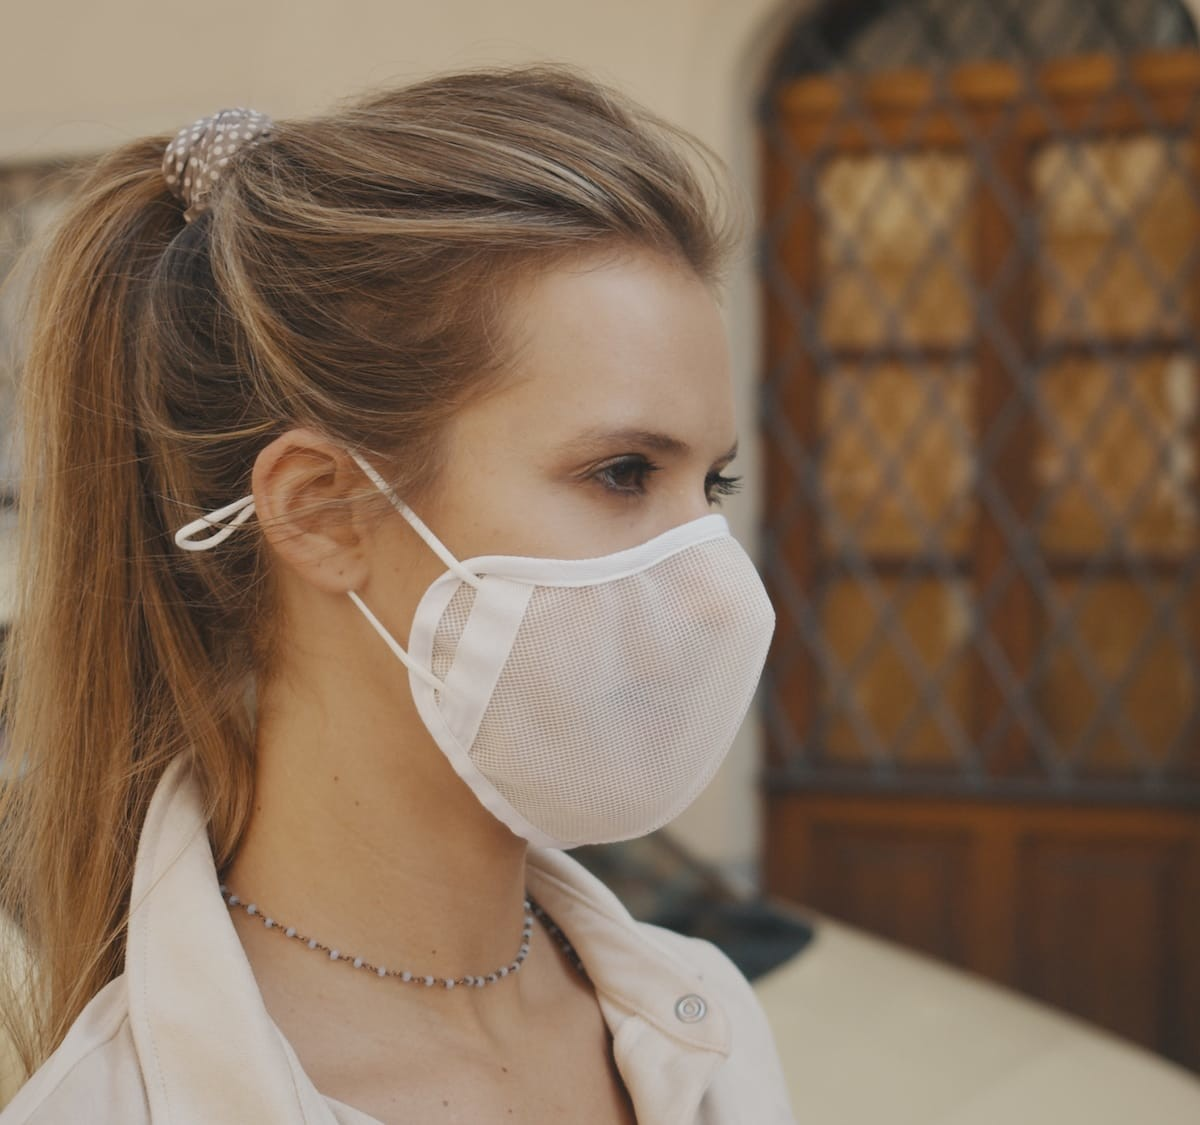 Airable Mask nanofiber mesh mask is great for any type of activity